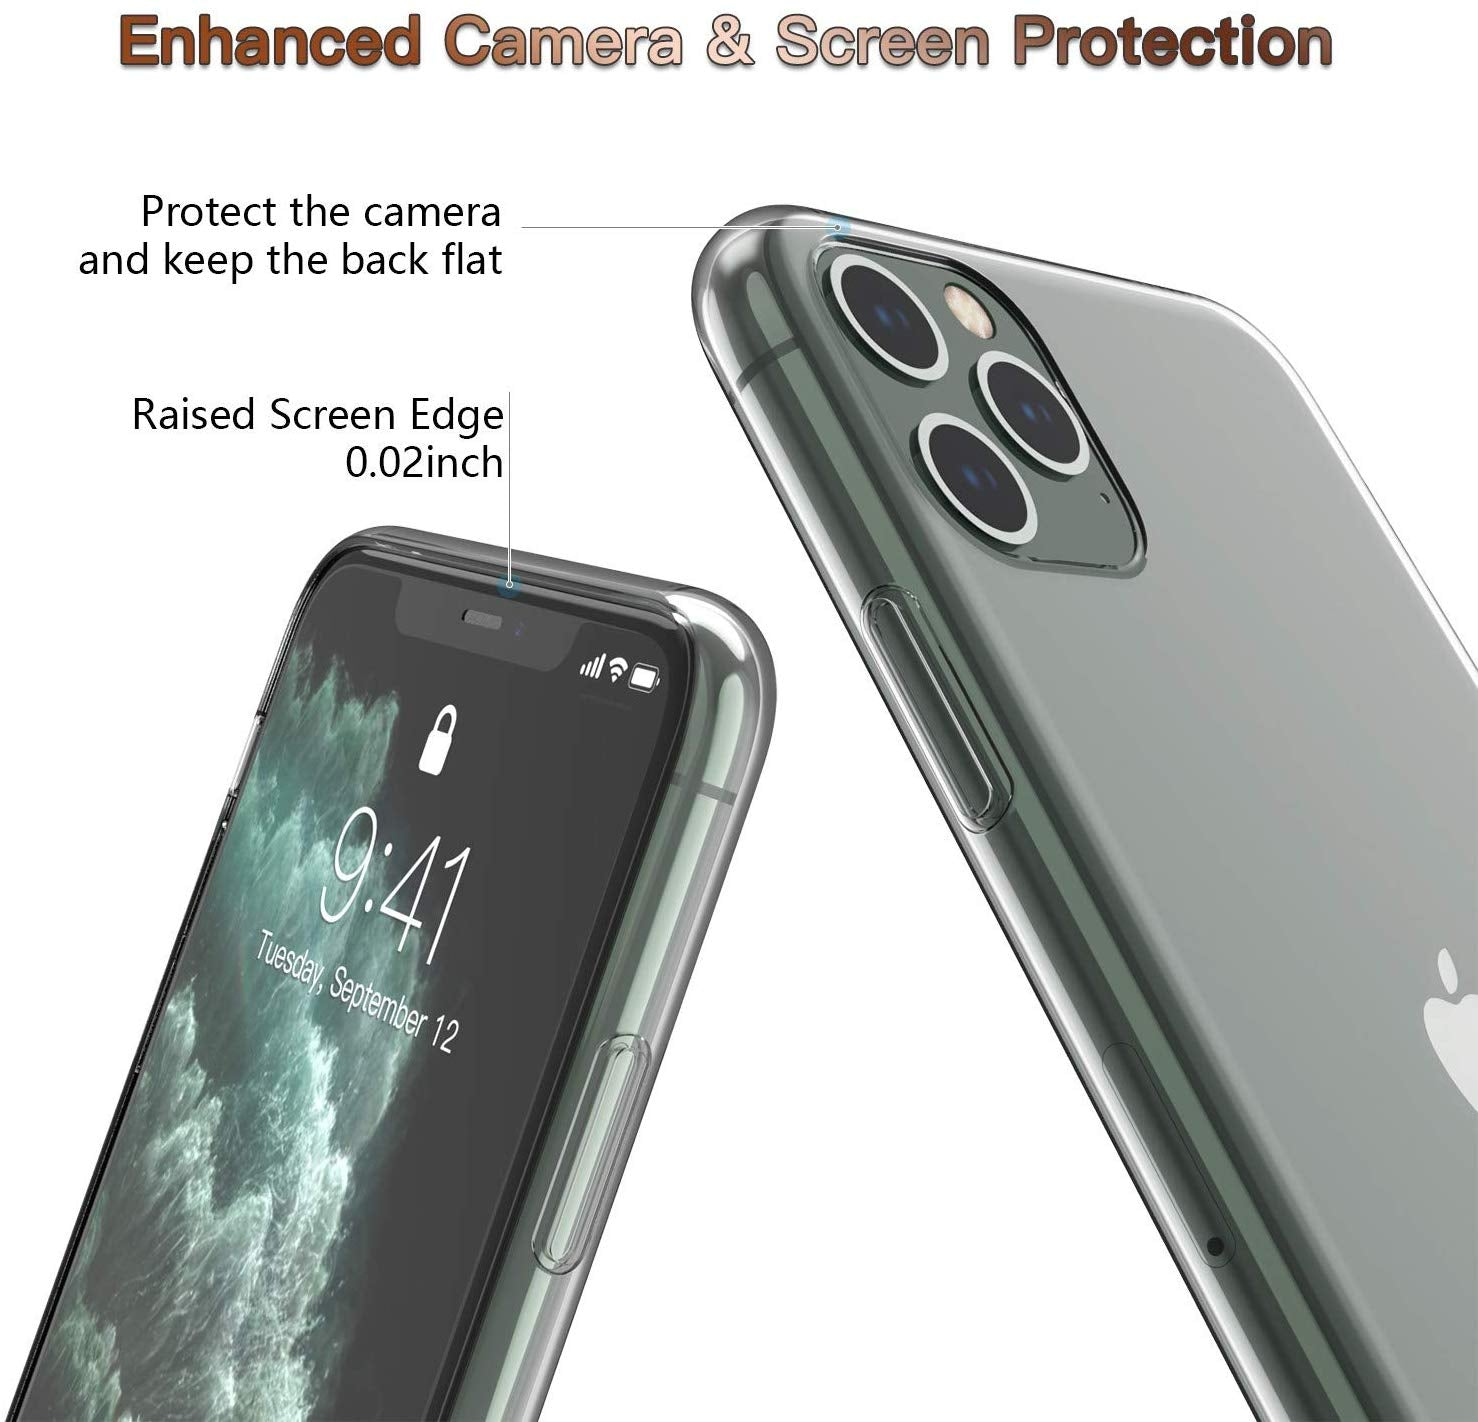 iPhone Case for iPhone 11 iPhone 11 Pro iPhone 11 Pro Max Cell Phones